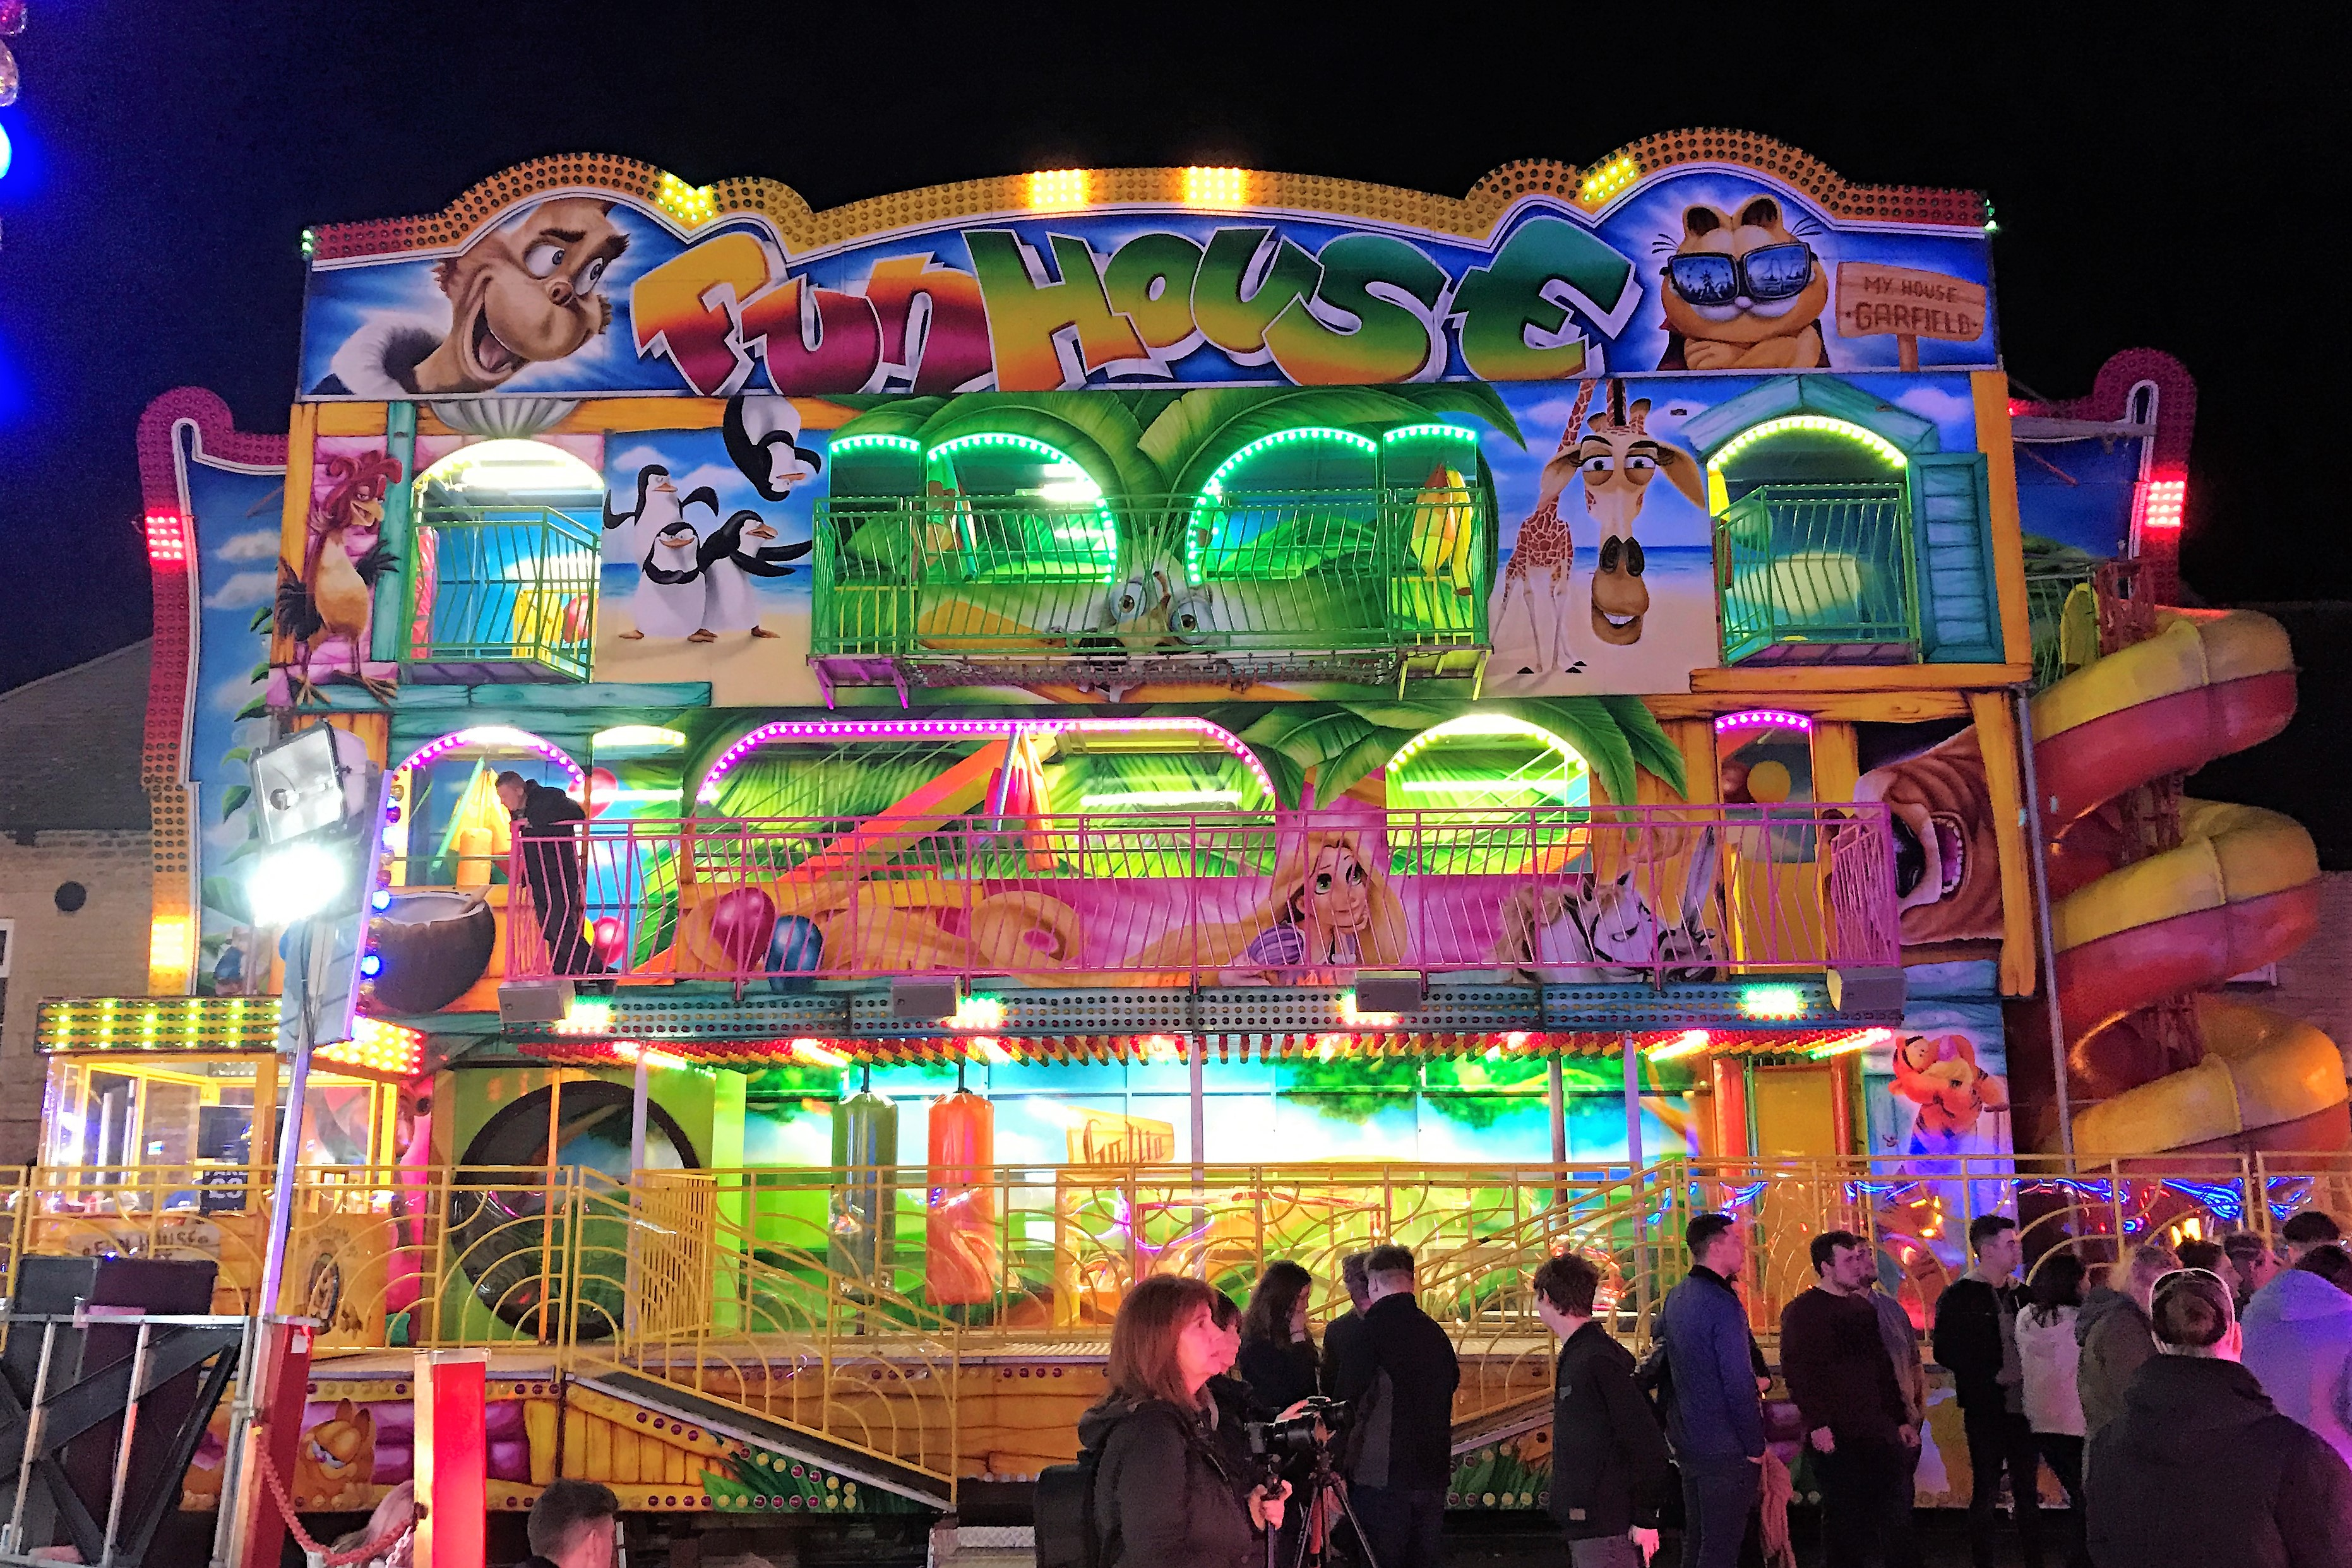 3 Deck Fun House